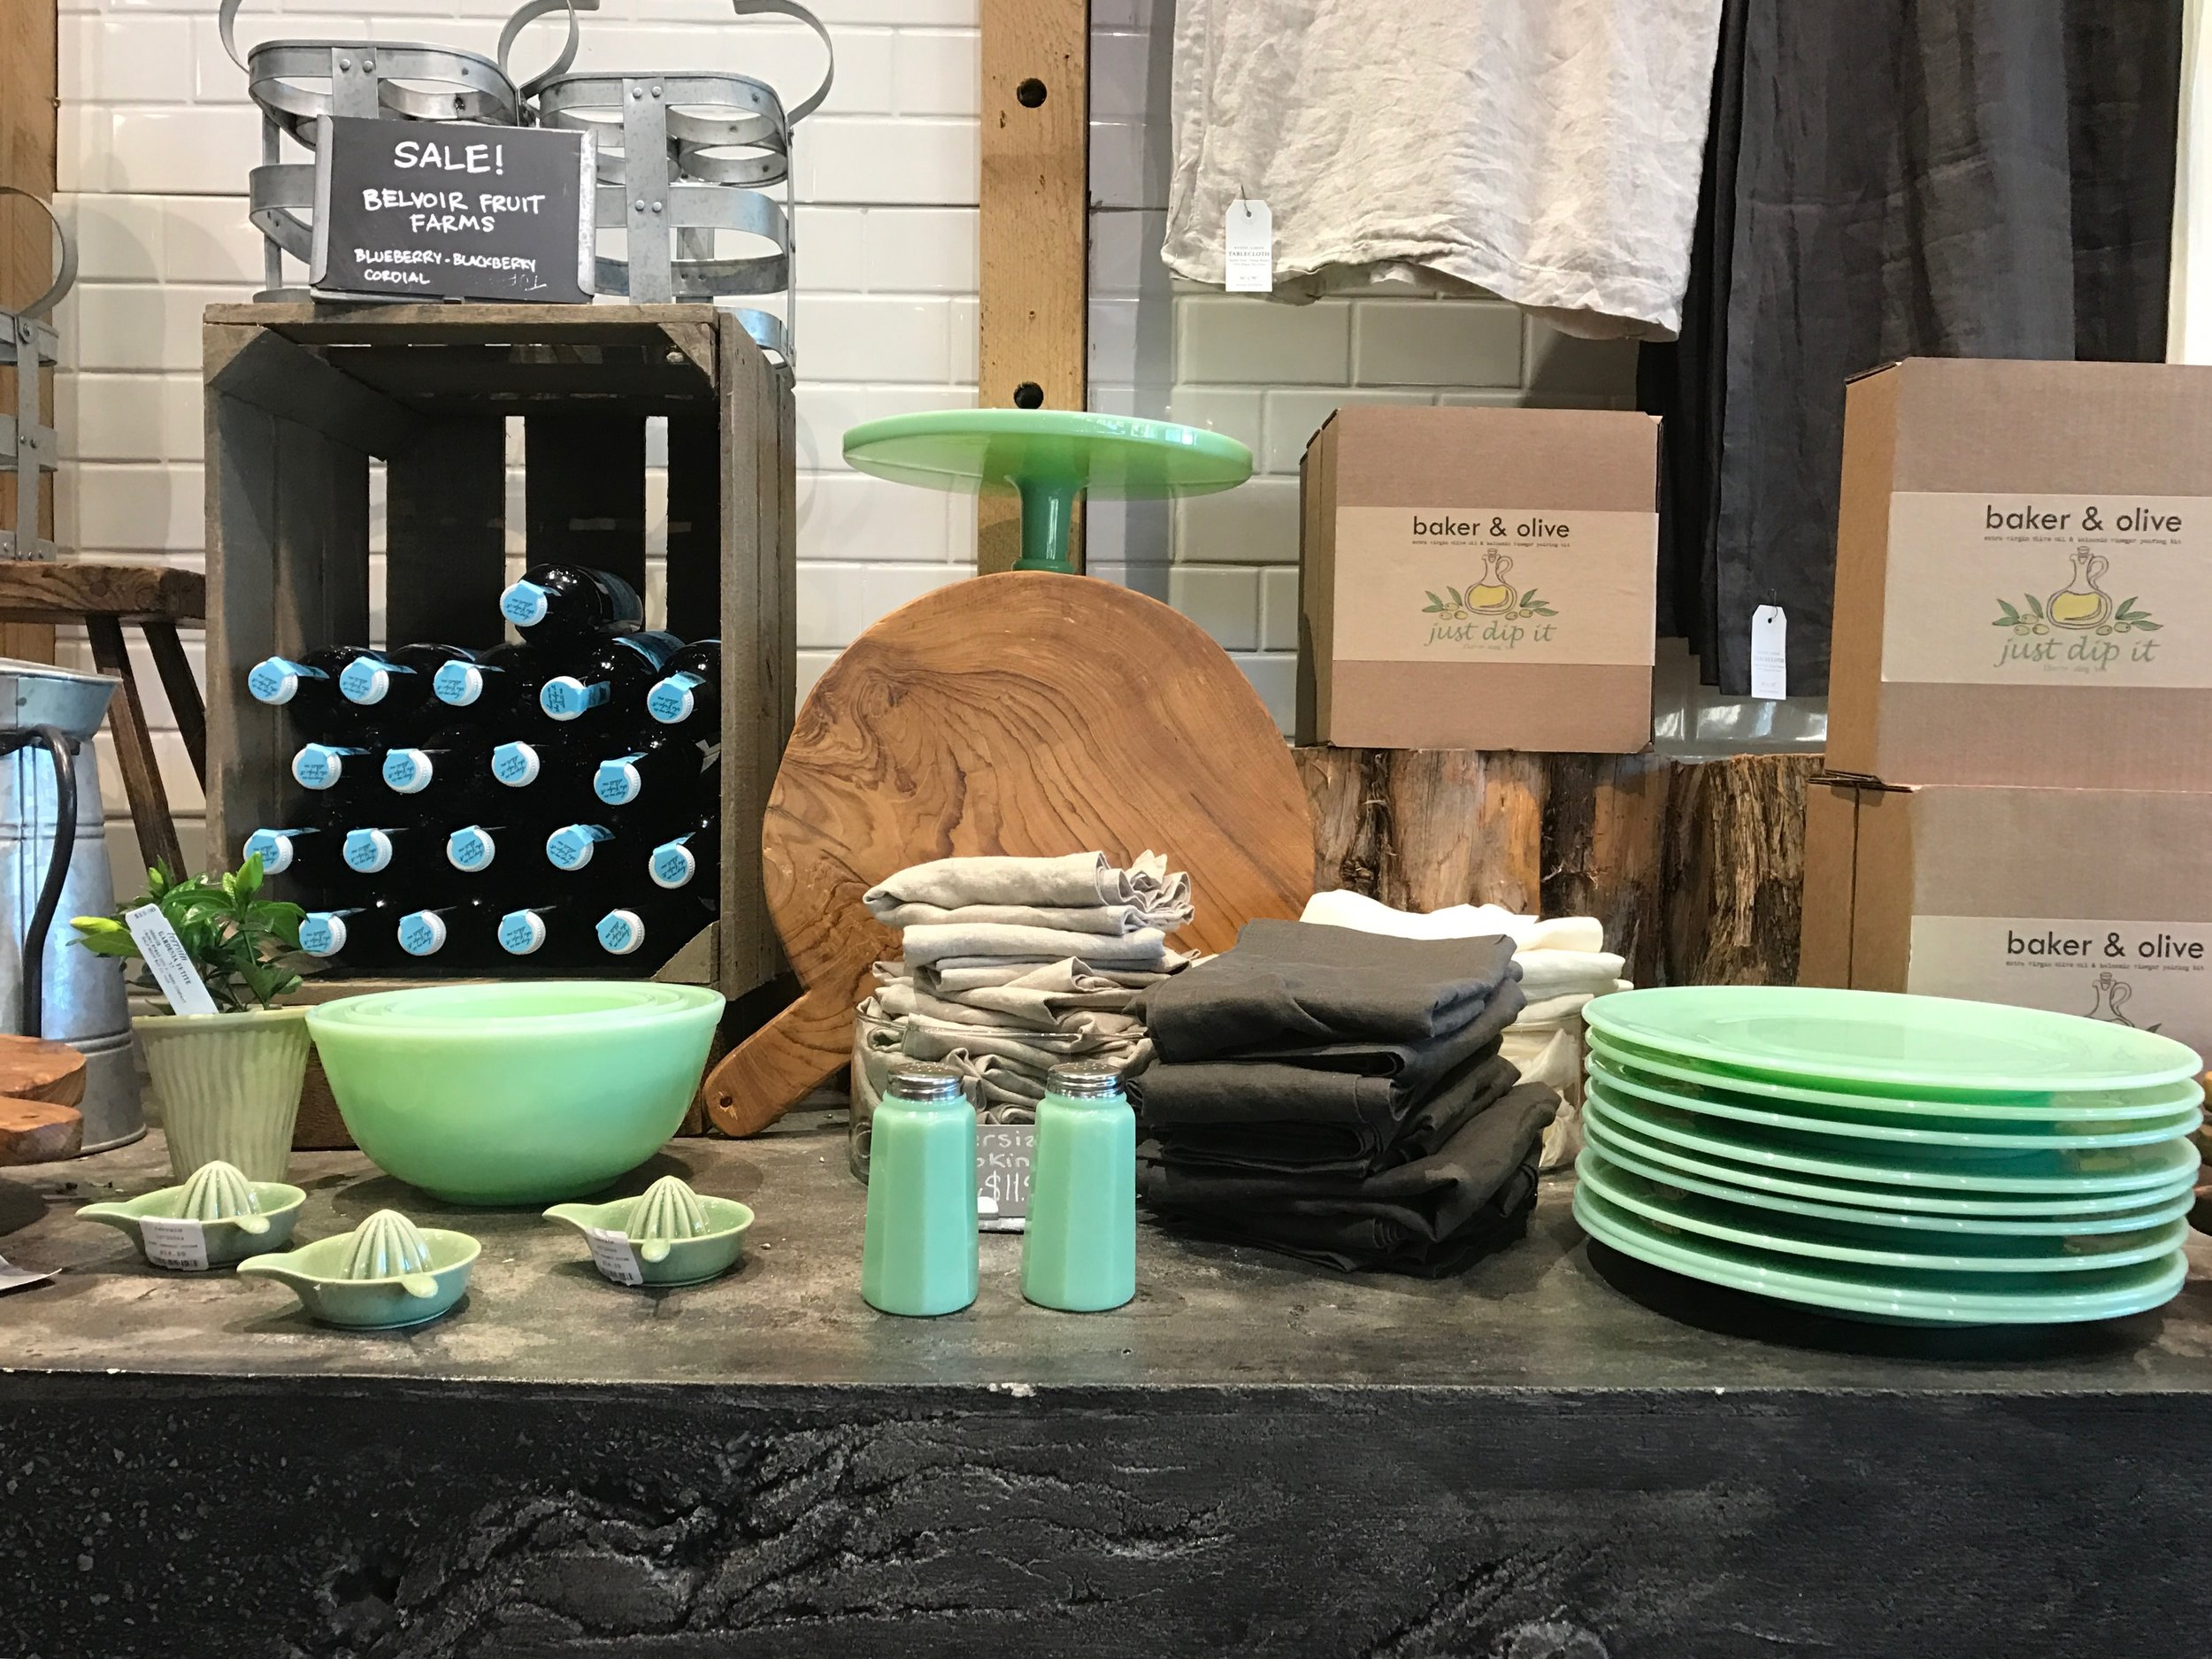 I was in Tiffany Blue, Vintage, and Interior Design heaven...all in one place.